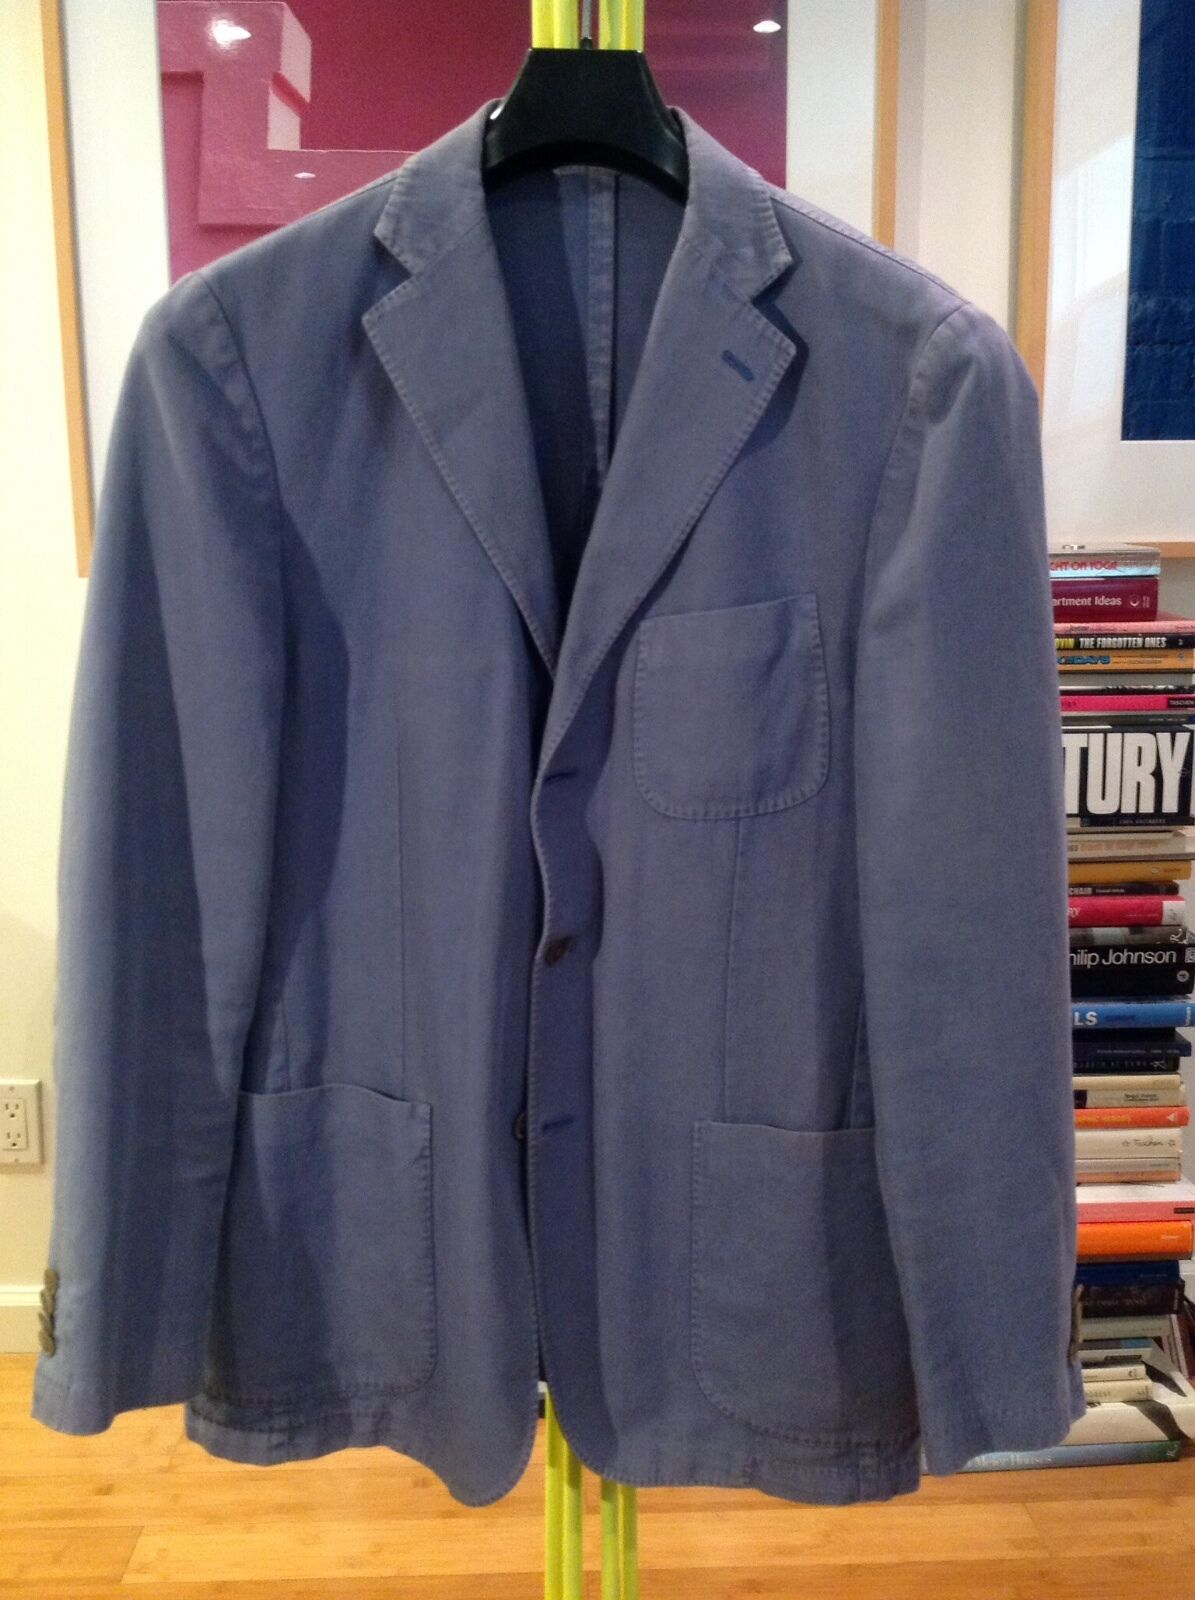 EIDOS - FRENCH Blau - 3BTN CENTER VENT - COTTON SPORT COAT (Sz 52/42)